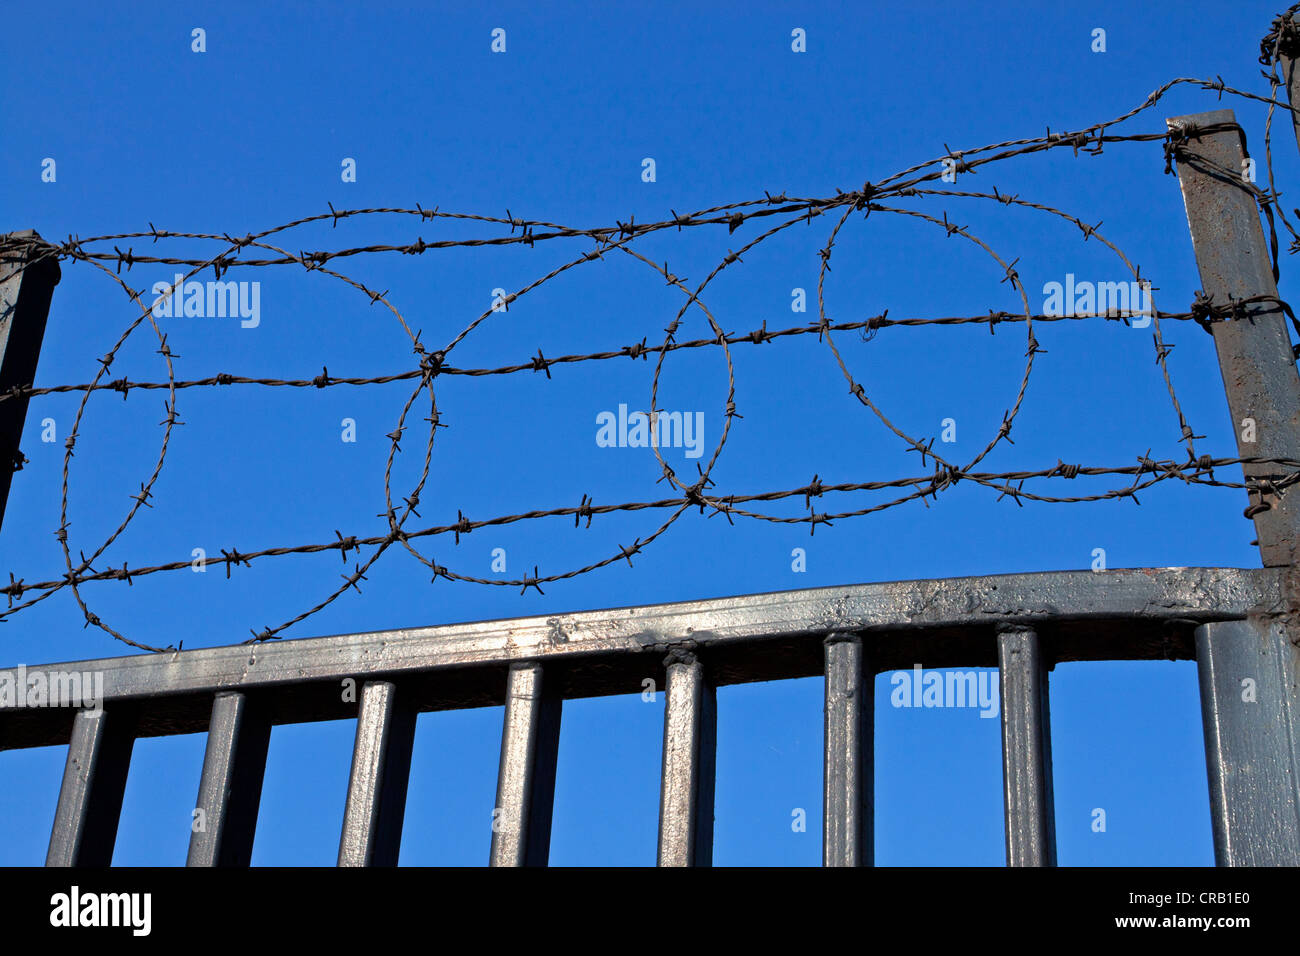 Barb barbed wire security fence fencing gate - Stock Image